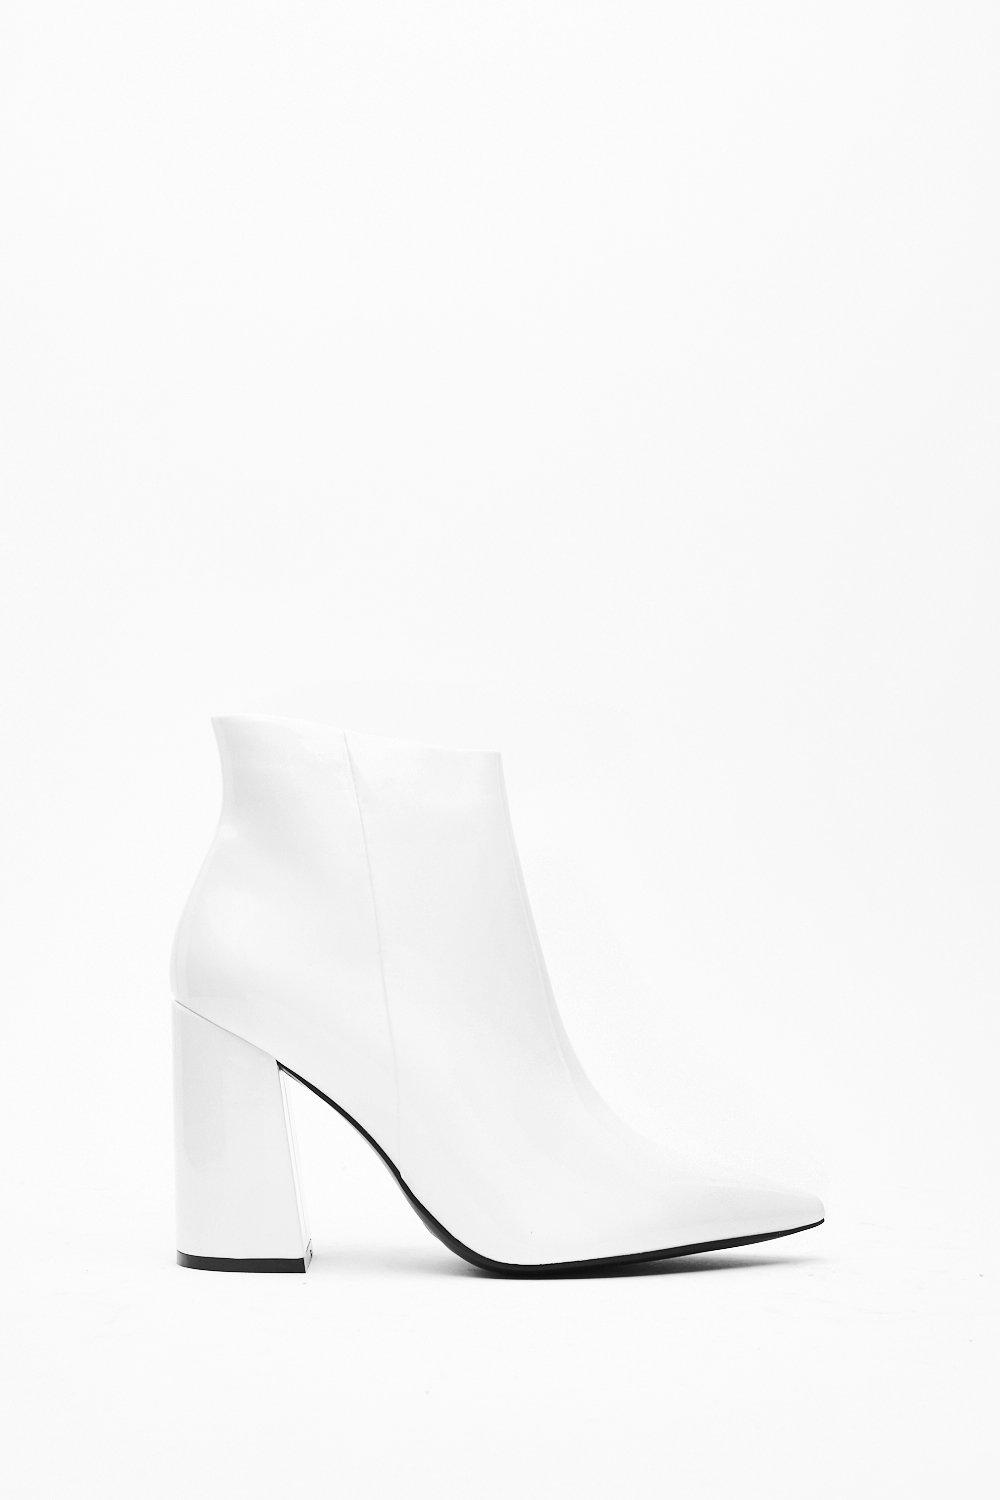 Image of Patent Flare Heel Ankle Boot